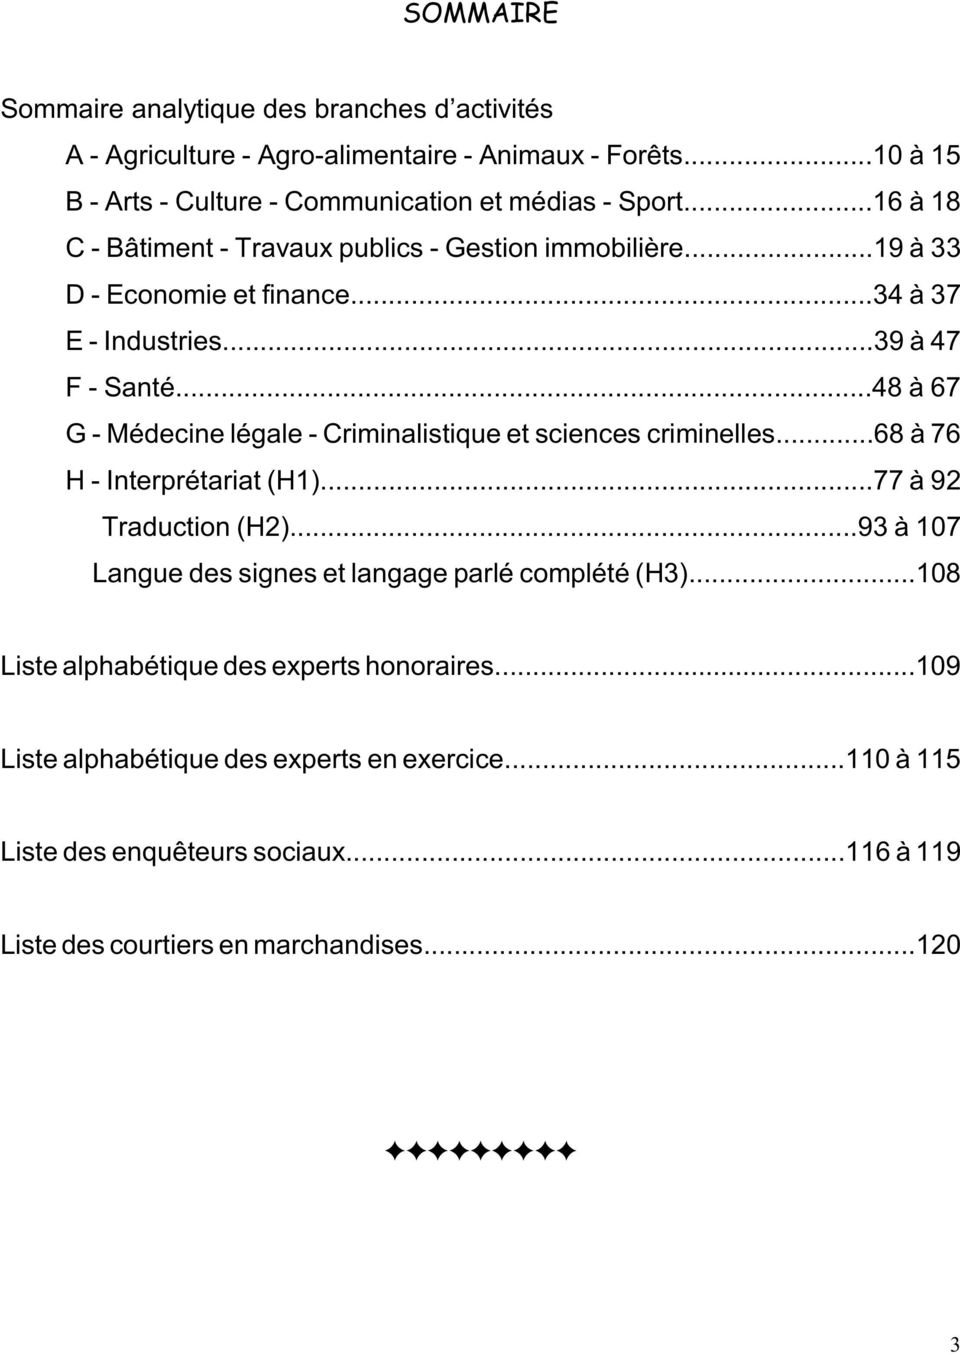 ..48 à 67 G - Médecine légale - Criminalistique et sciences criminelles...68 à 76 H - Interprétariat (H1)...77 à 92 Traduction (H2).